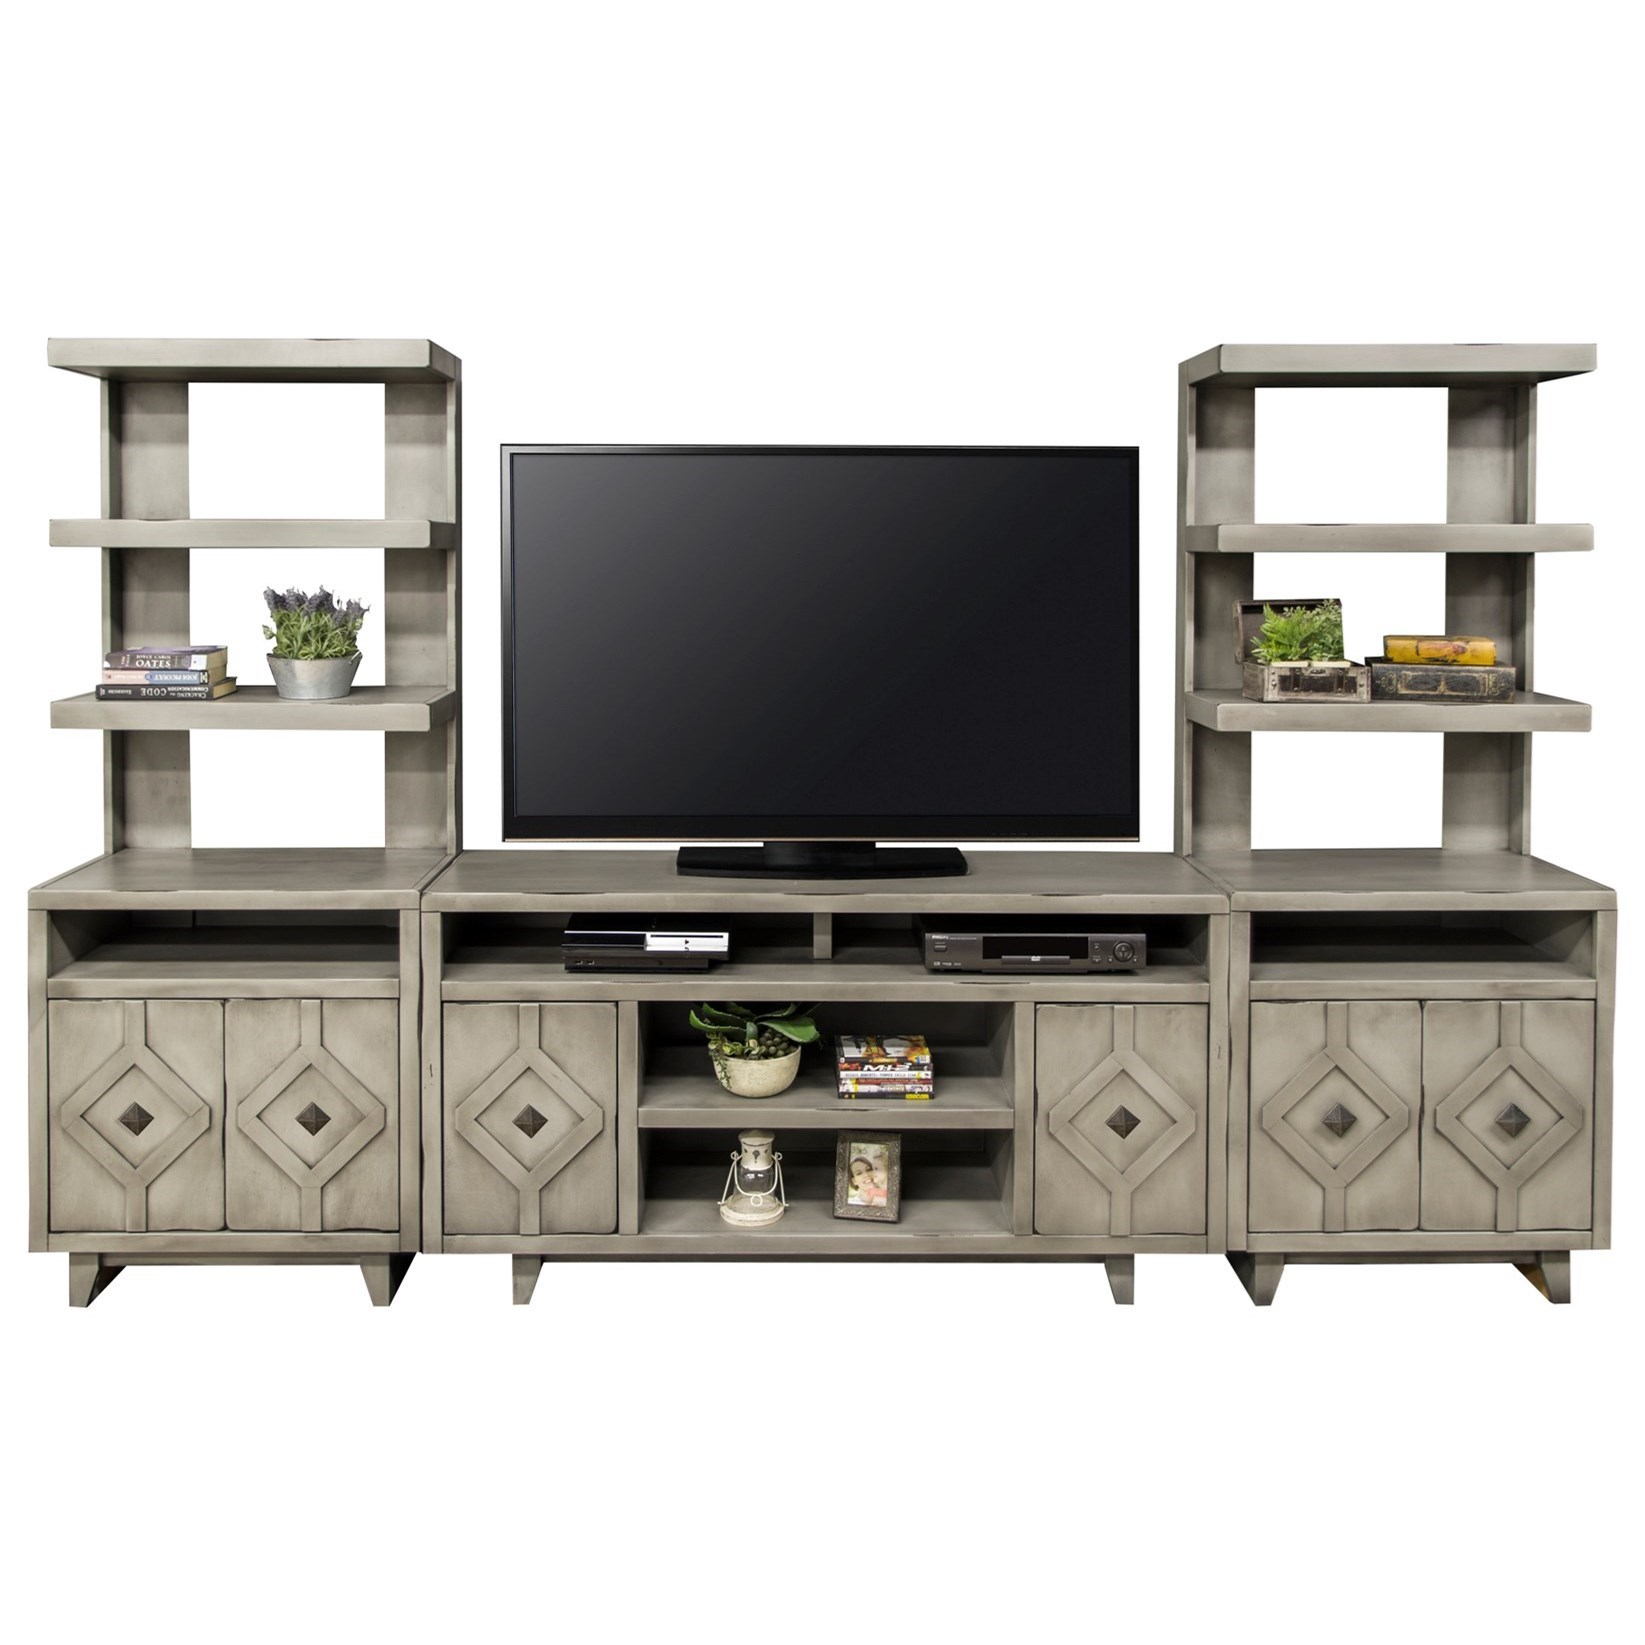 Legends Furniture Beverly Collection Entertainment Wall Unit - Item Number: BV1328-AGG+2x3979-AGG